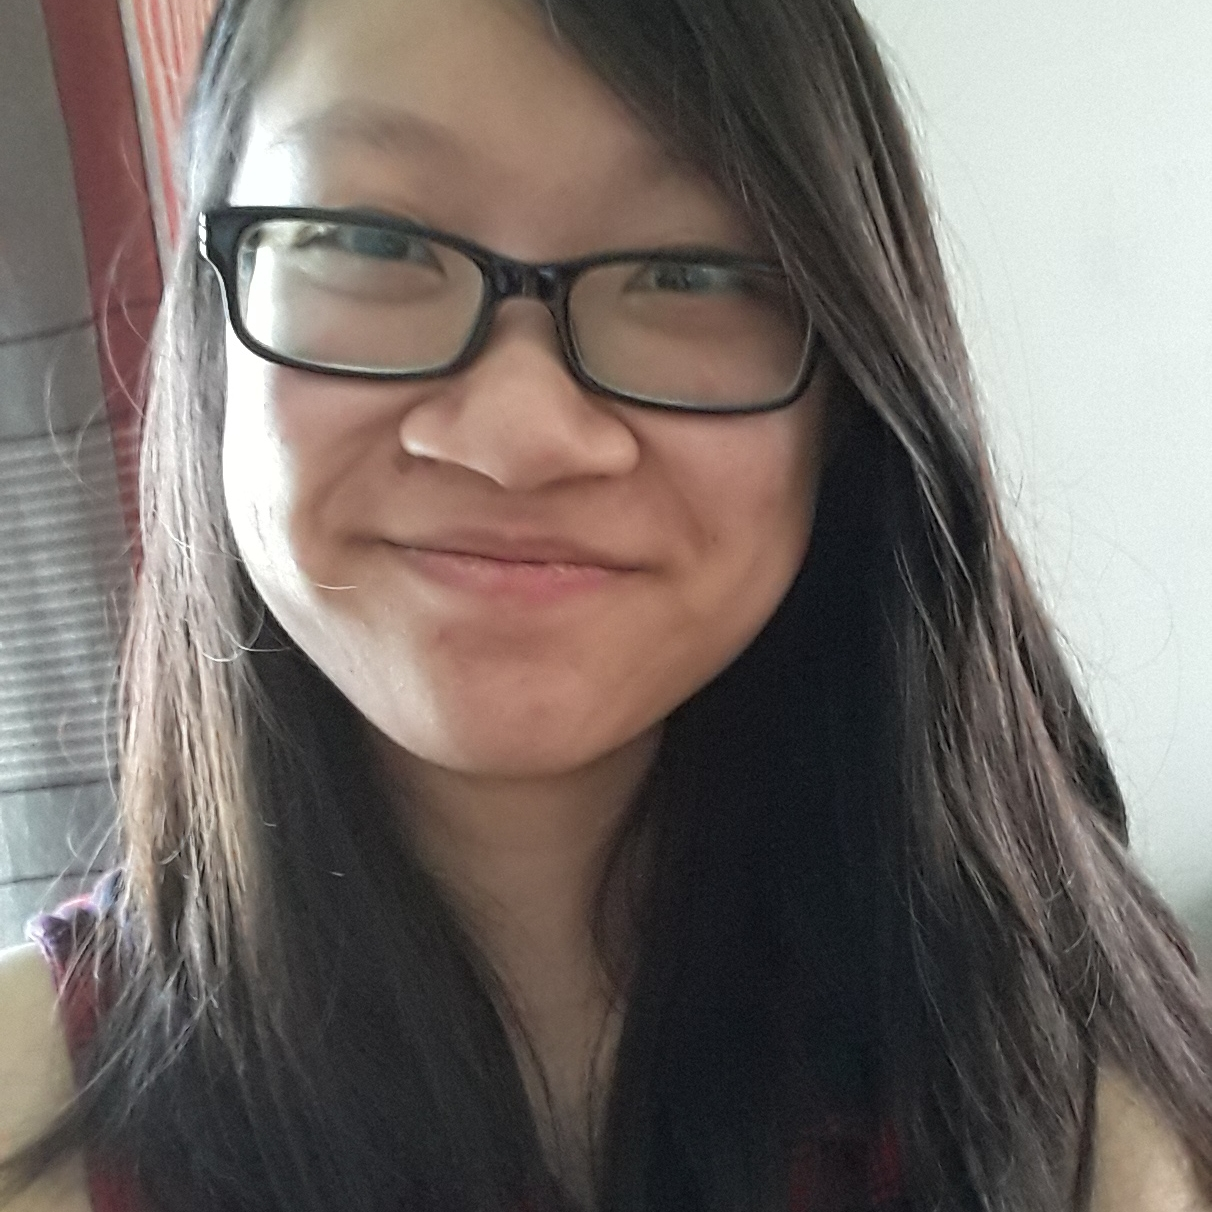 Felicia is smiling at the camera, wearing dark rimmed glasses and has long brown hair.